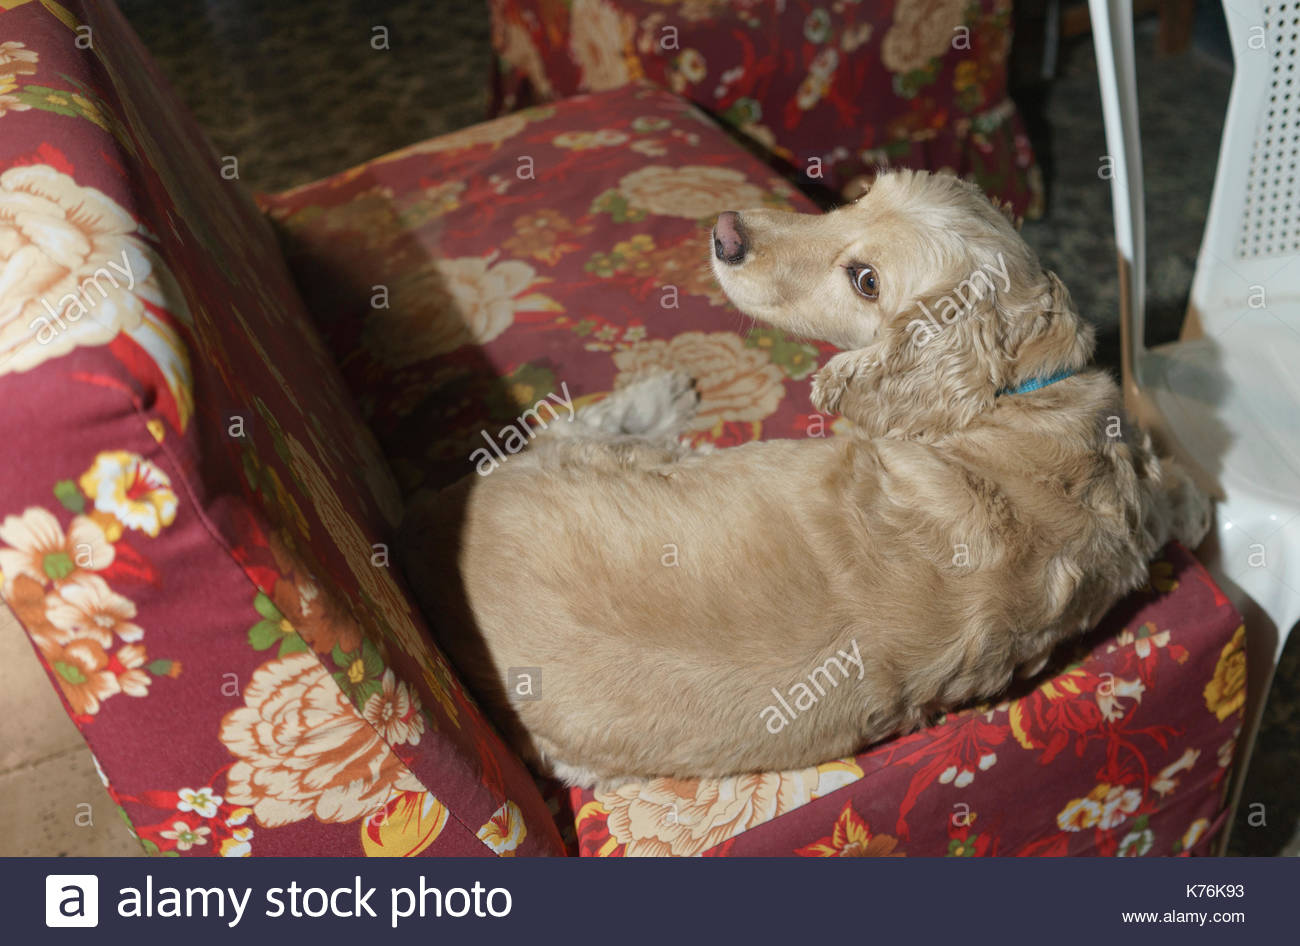 Lola, mostly cocker spaniel, looking dubious on a red floral slip covered couch - Stock Image